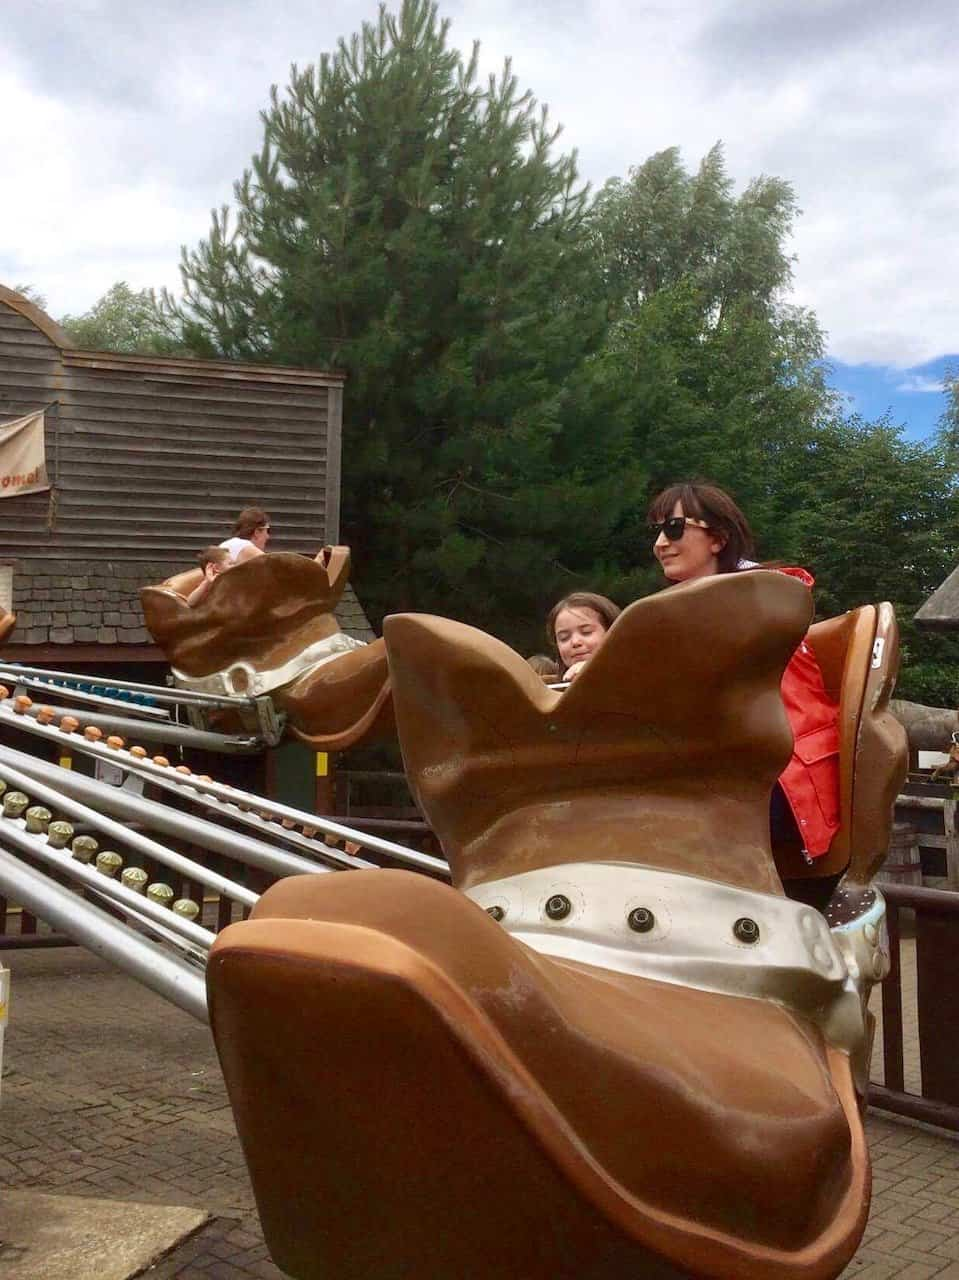 The boot ride at Gulliver's Land Theme Park